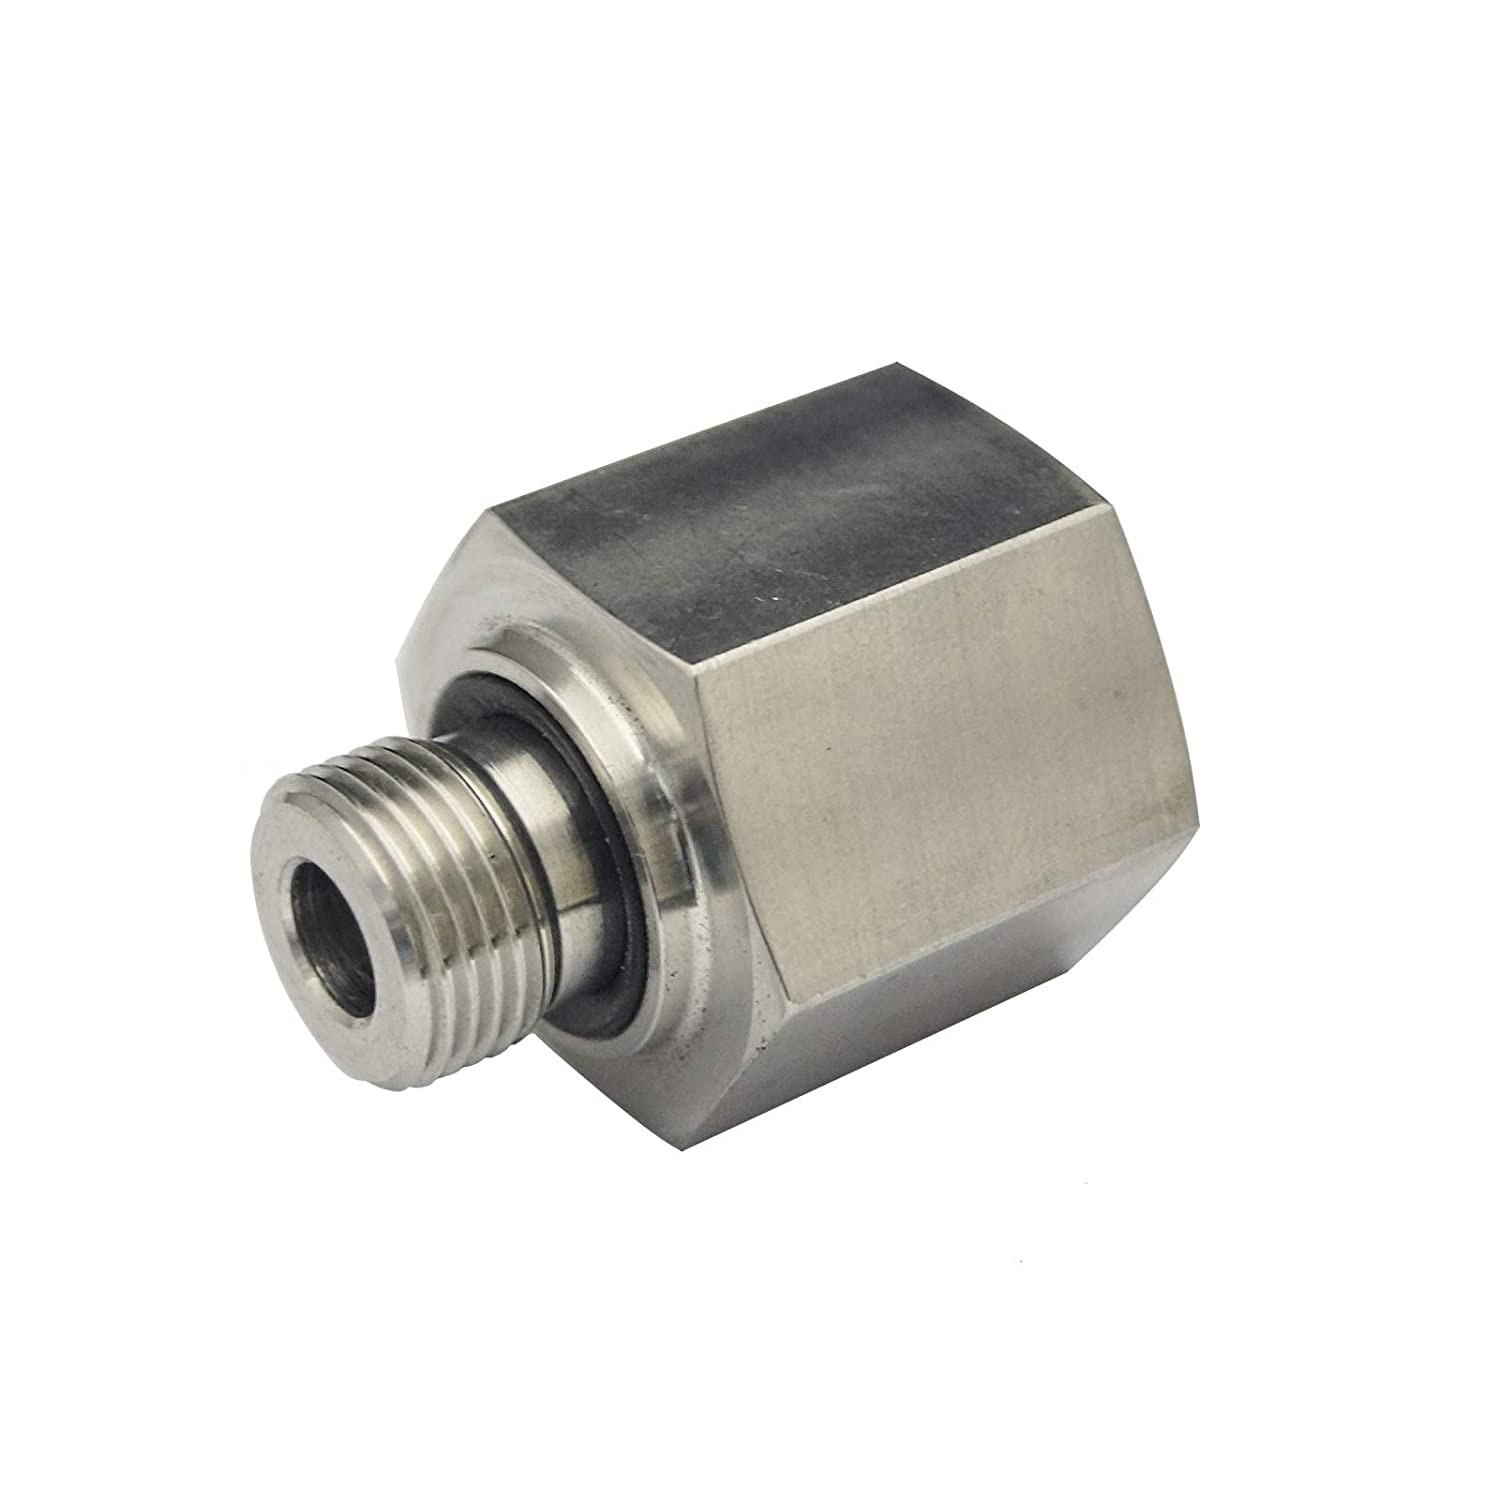 Stainless Steel SS316 Fort Worth Mall Forged Pipe Ranking TOP3 Adapter Fitting 2